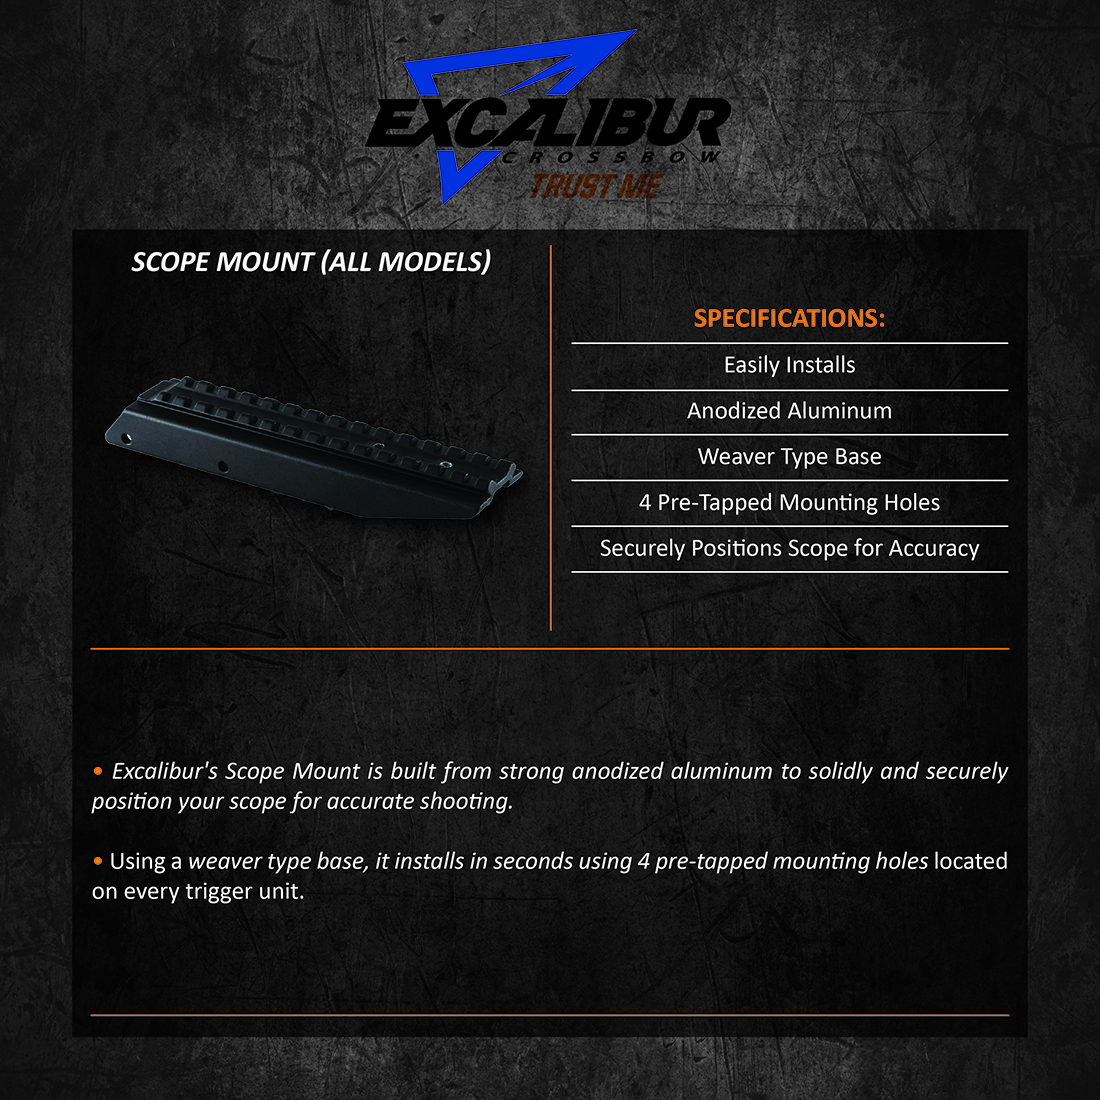 Excalibur_Scope_Mount_AllModels_Product_Description